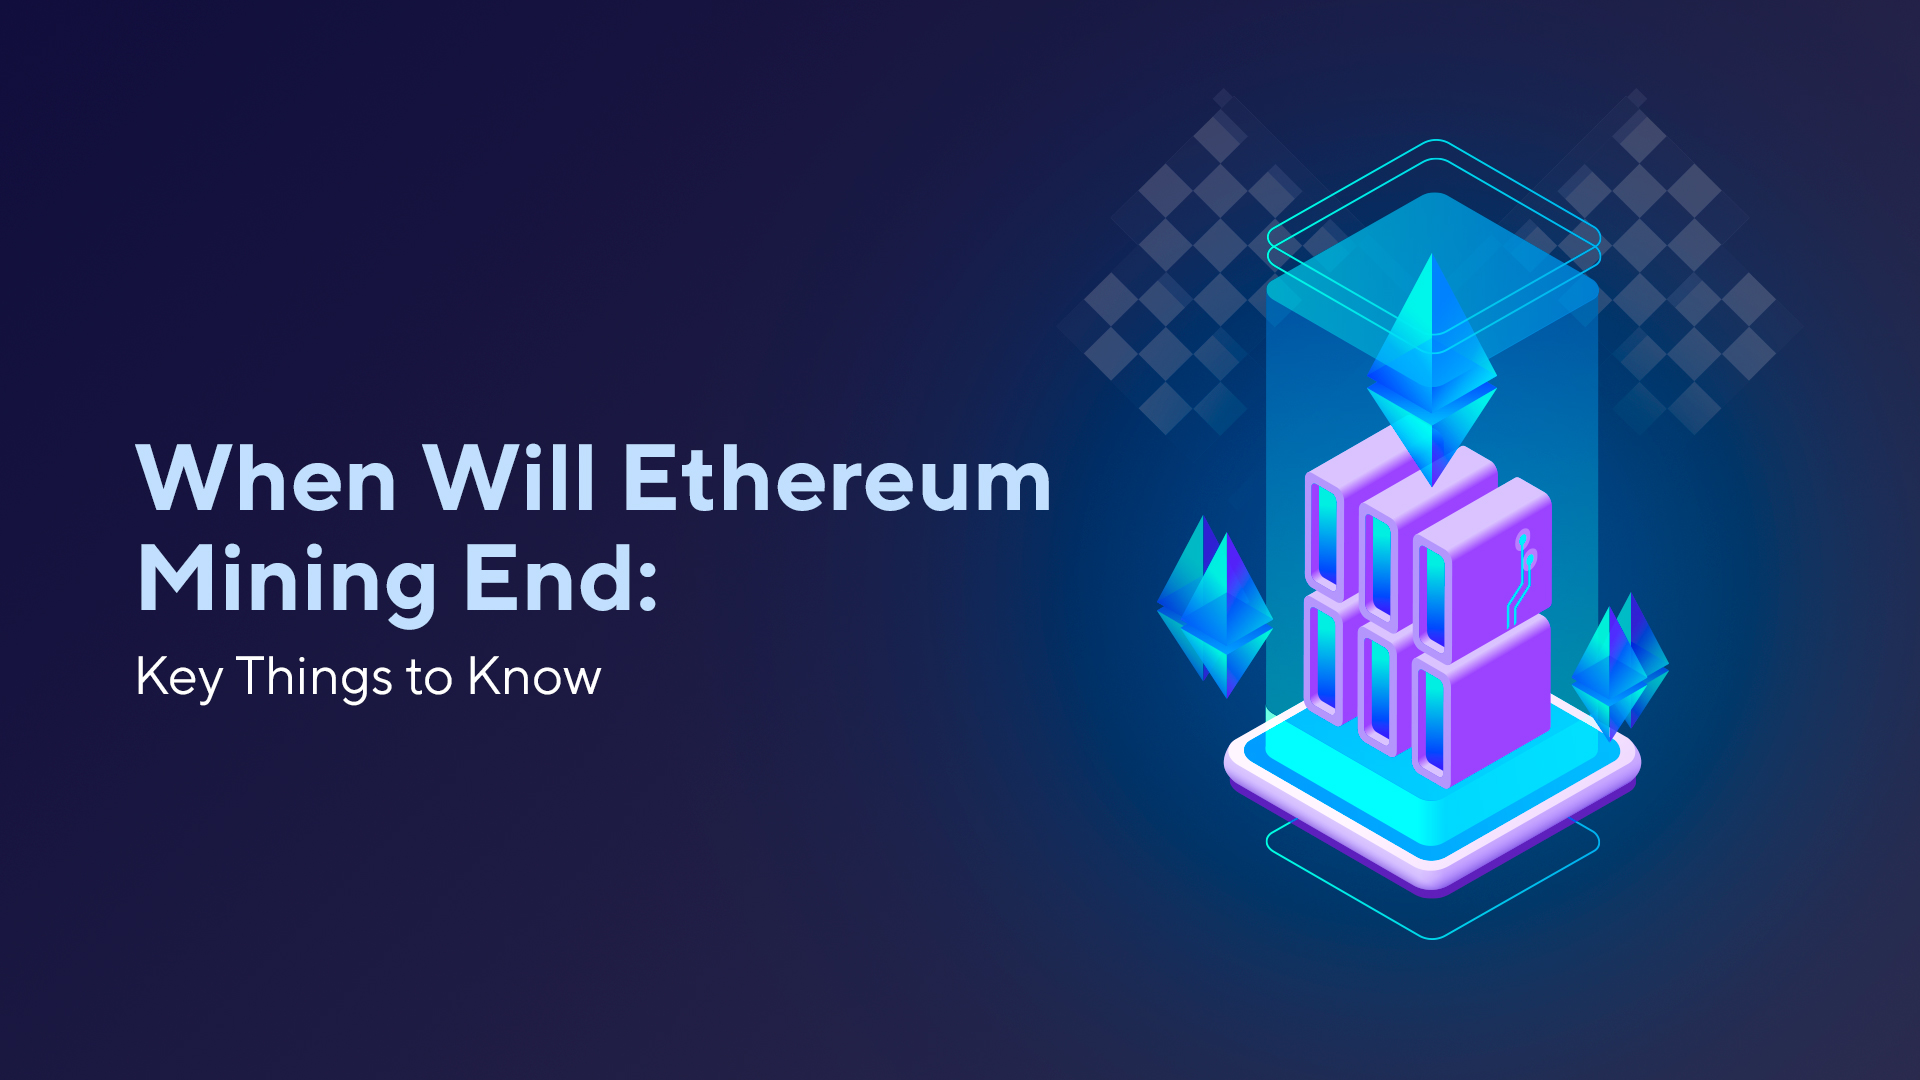 When Will Ethereum Mining End: Key Things to Know